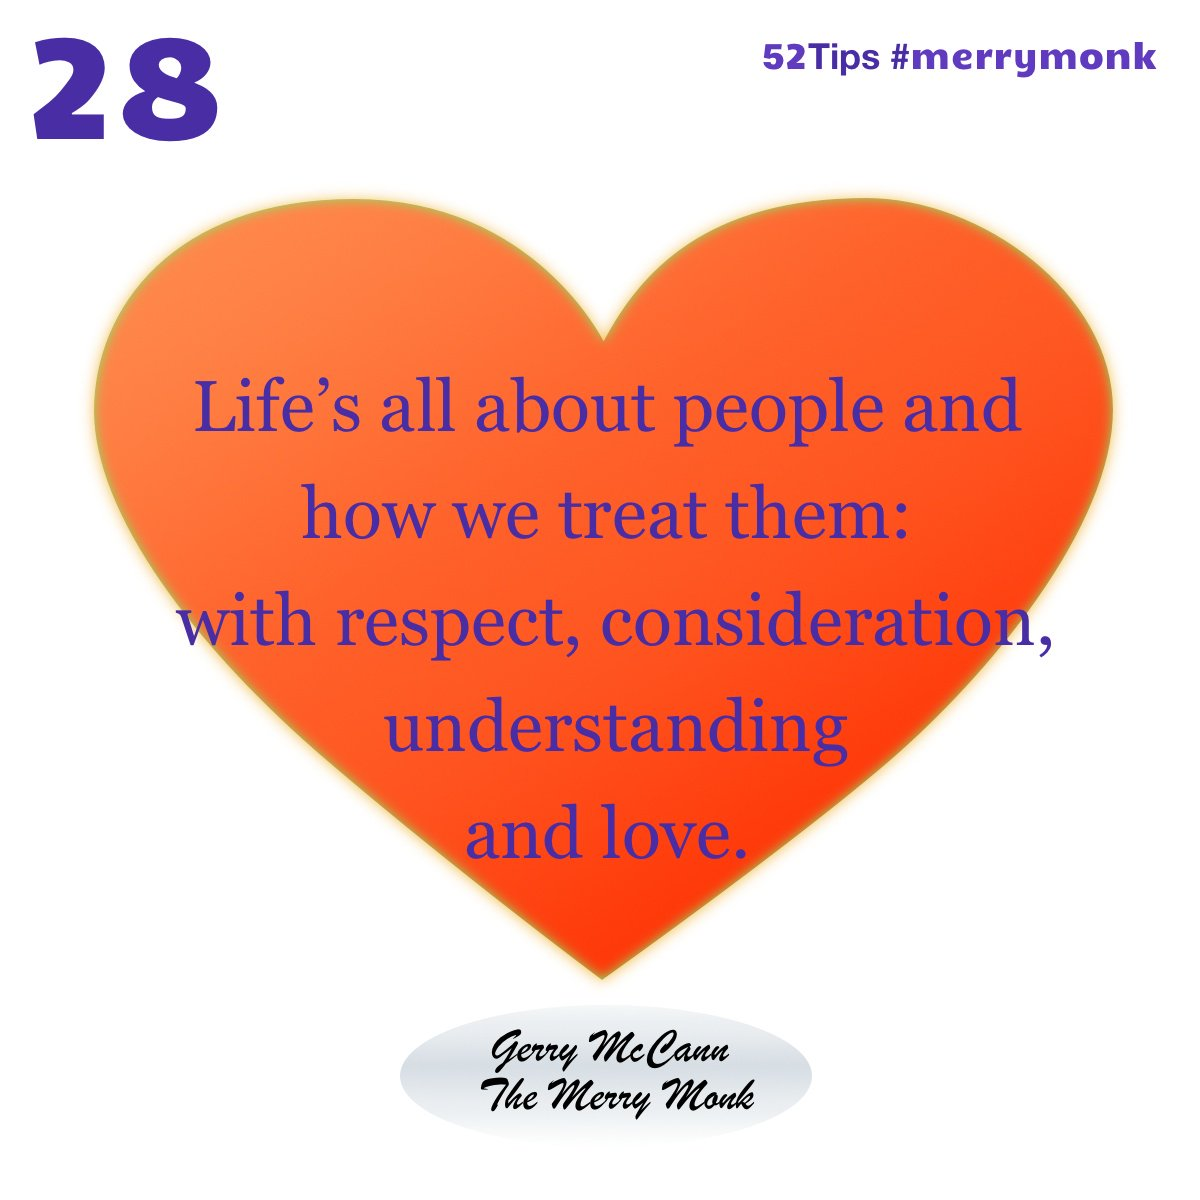 Life is about people   #IQRTG #quote #dailyquote <br>http://pic.twitter.com/Yfmdv9GlvH